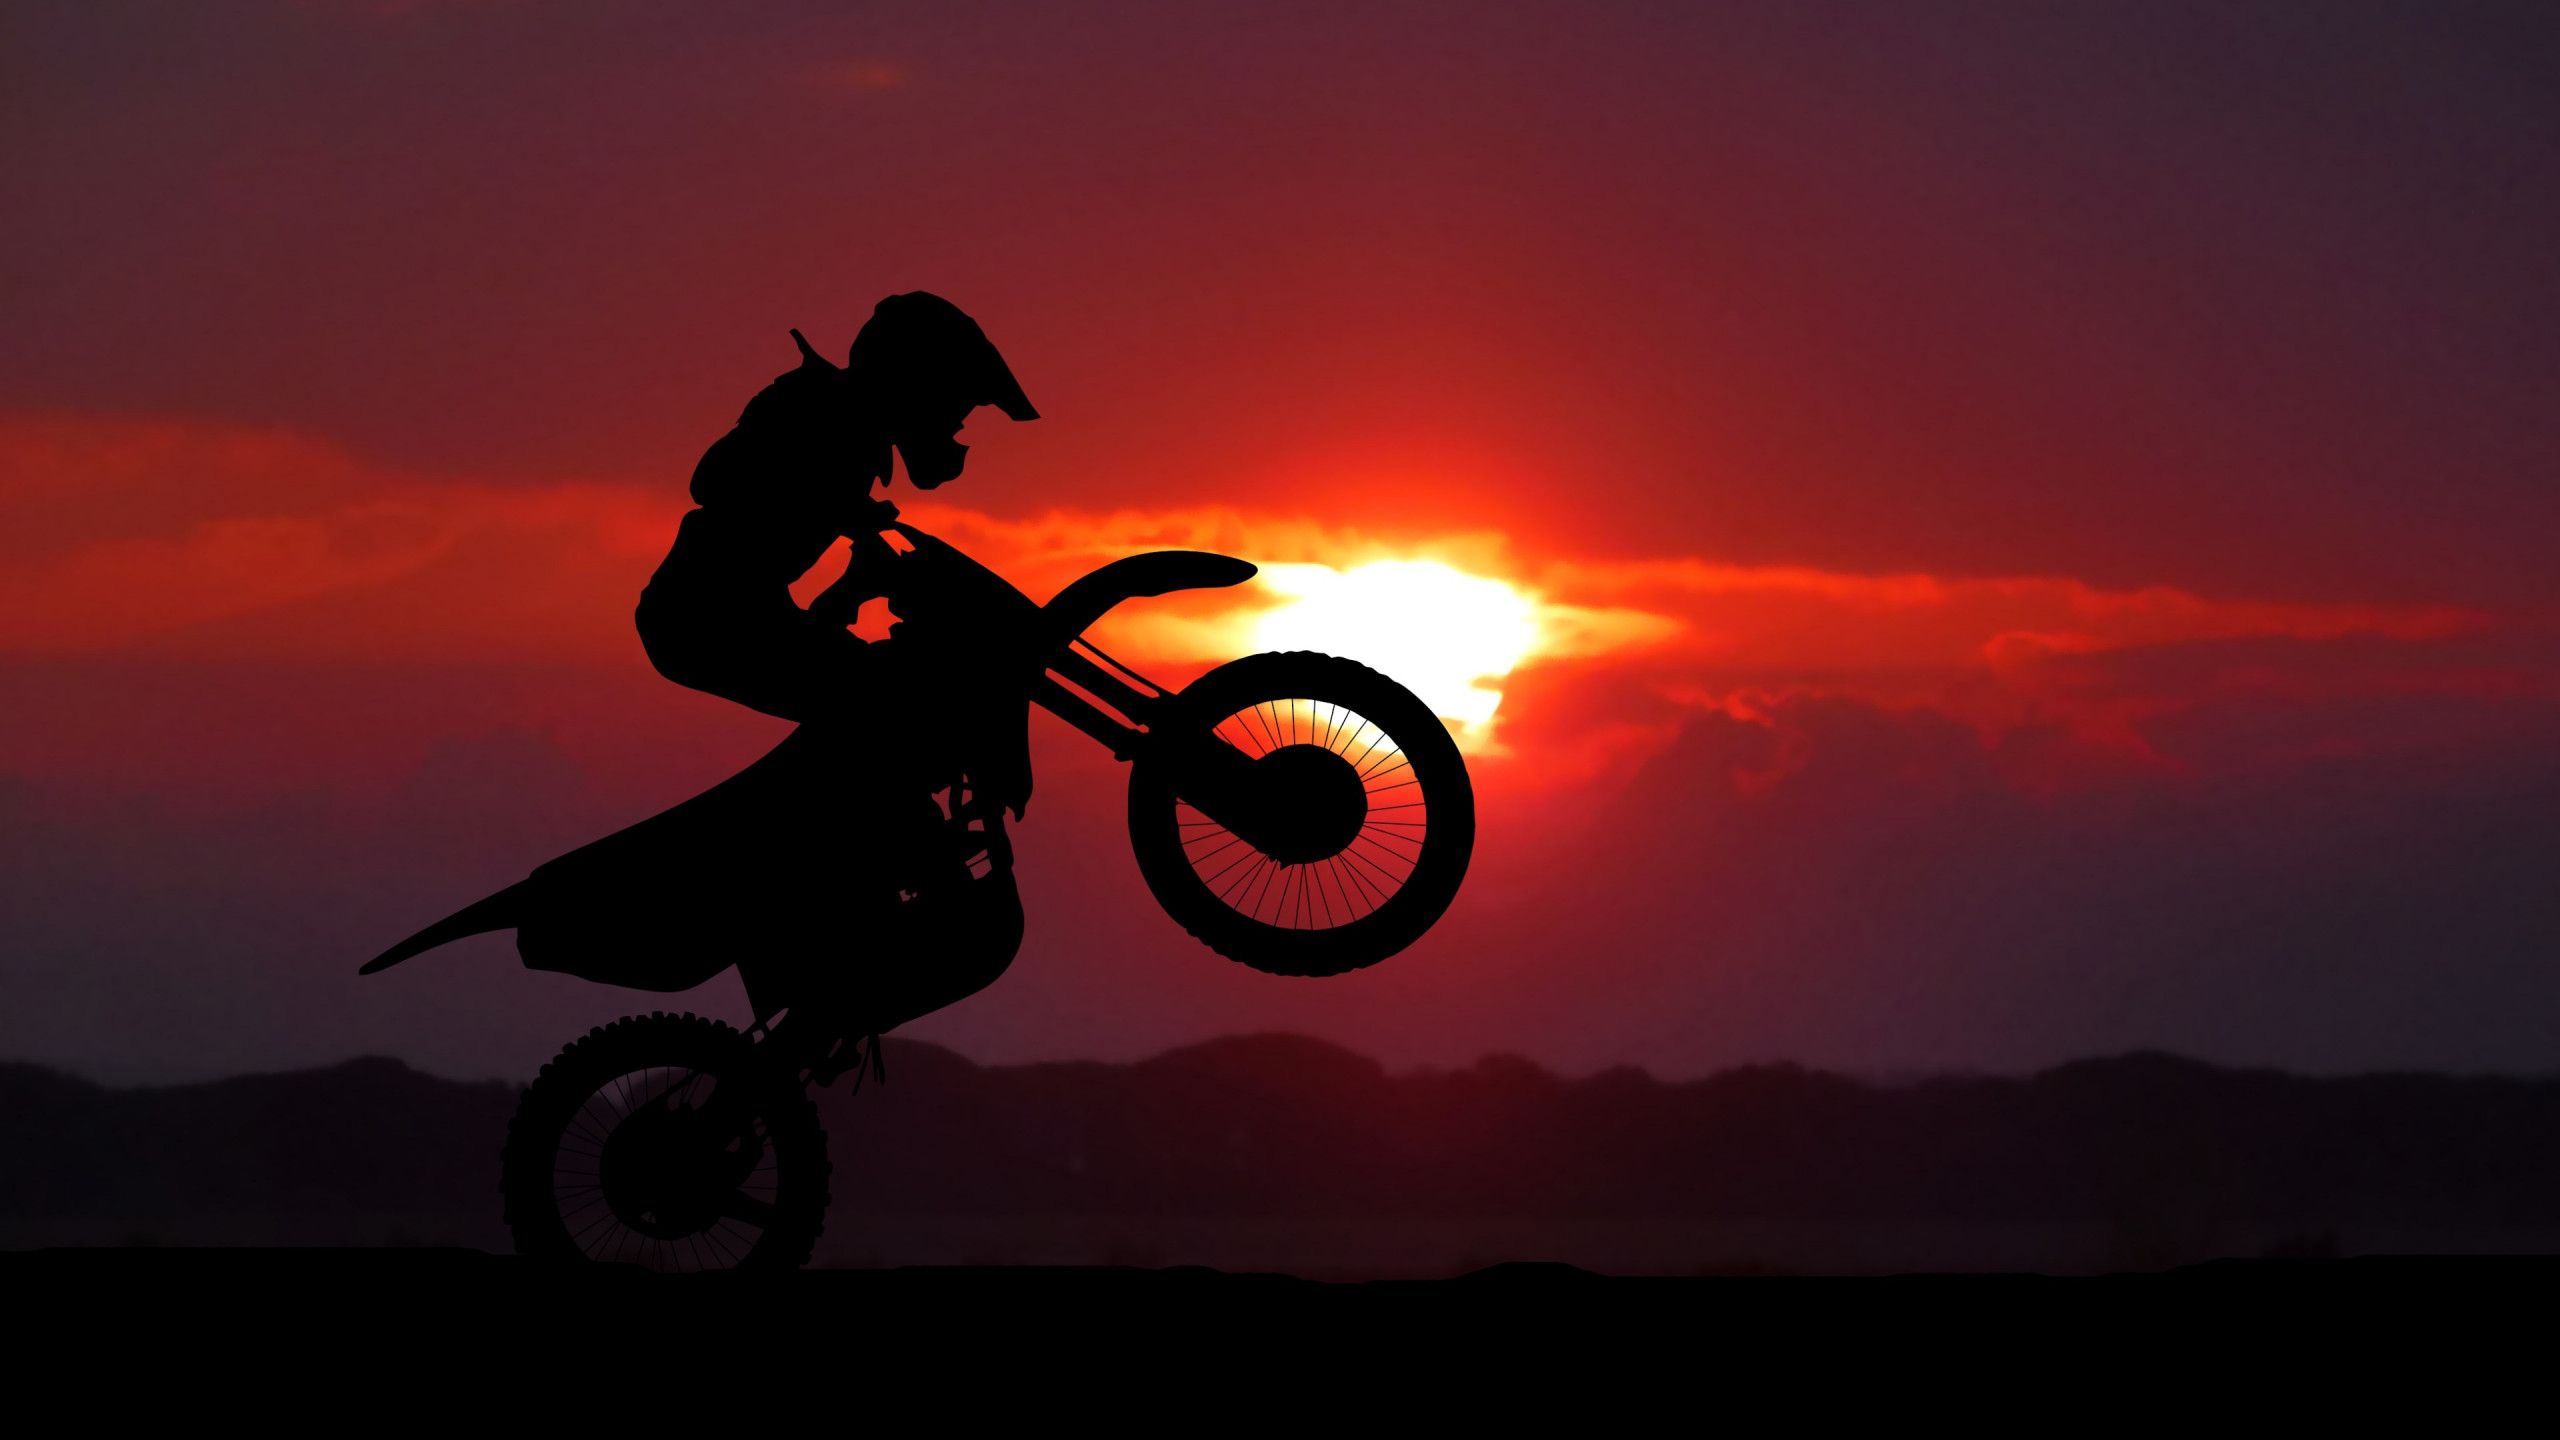 Biker on motorcycle at sunrise wallpaper 2560x1440